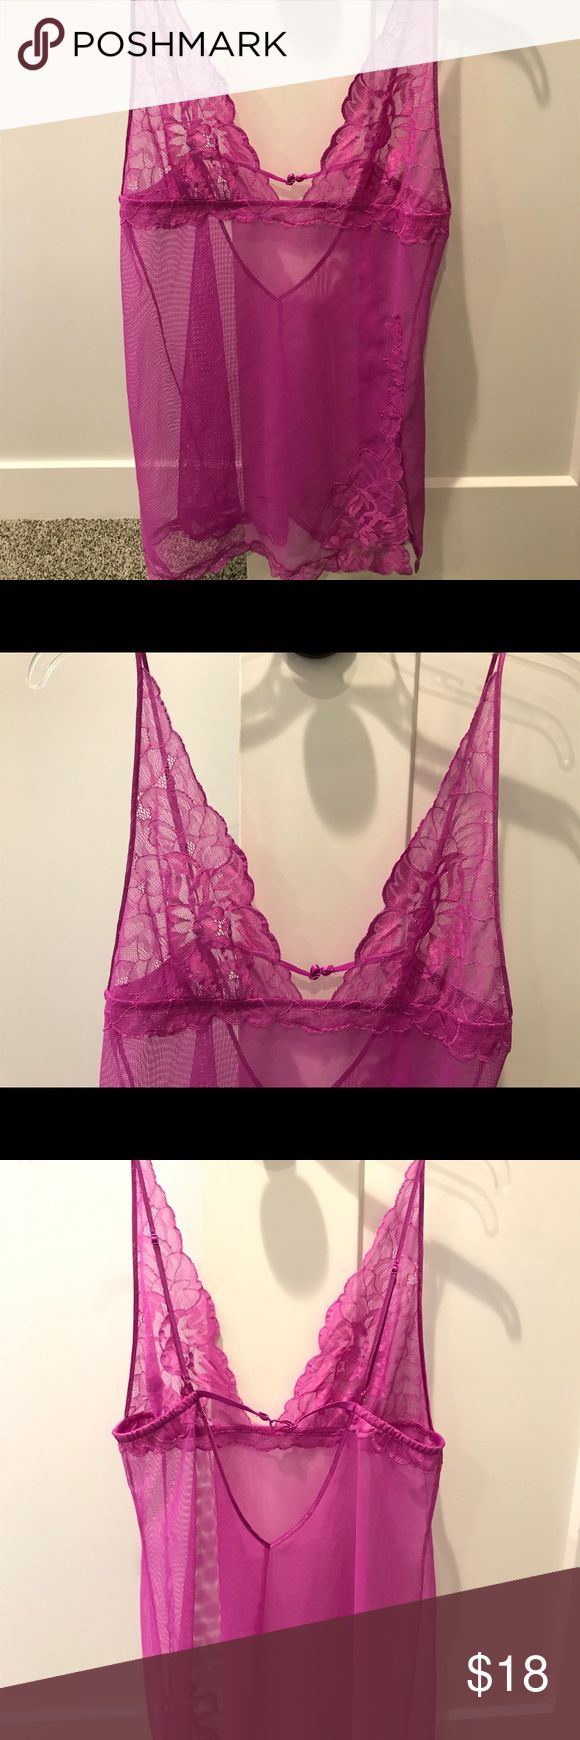 Victoria's Secret Medium Purple Lace Lingerie Victoria's Secret size Medium or small -Purple Lace Lingerie adjustable band/hook. Worn once and never touched it again. It was the same style of another one that was too small.  Smoke and pet free home Victoria's Secret Intimates & Sleepwear Chemises & Slips